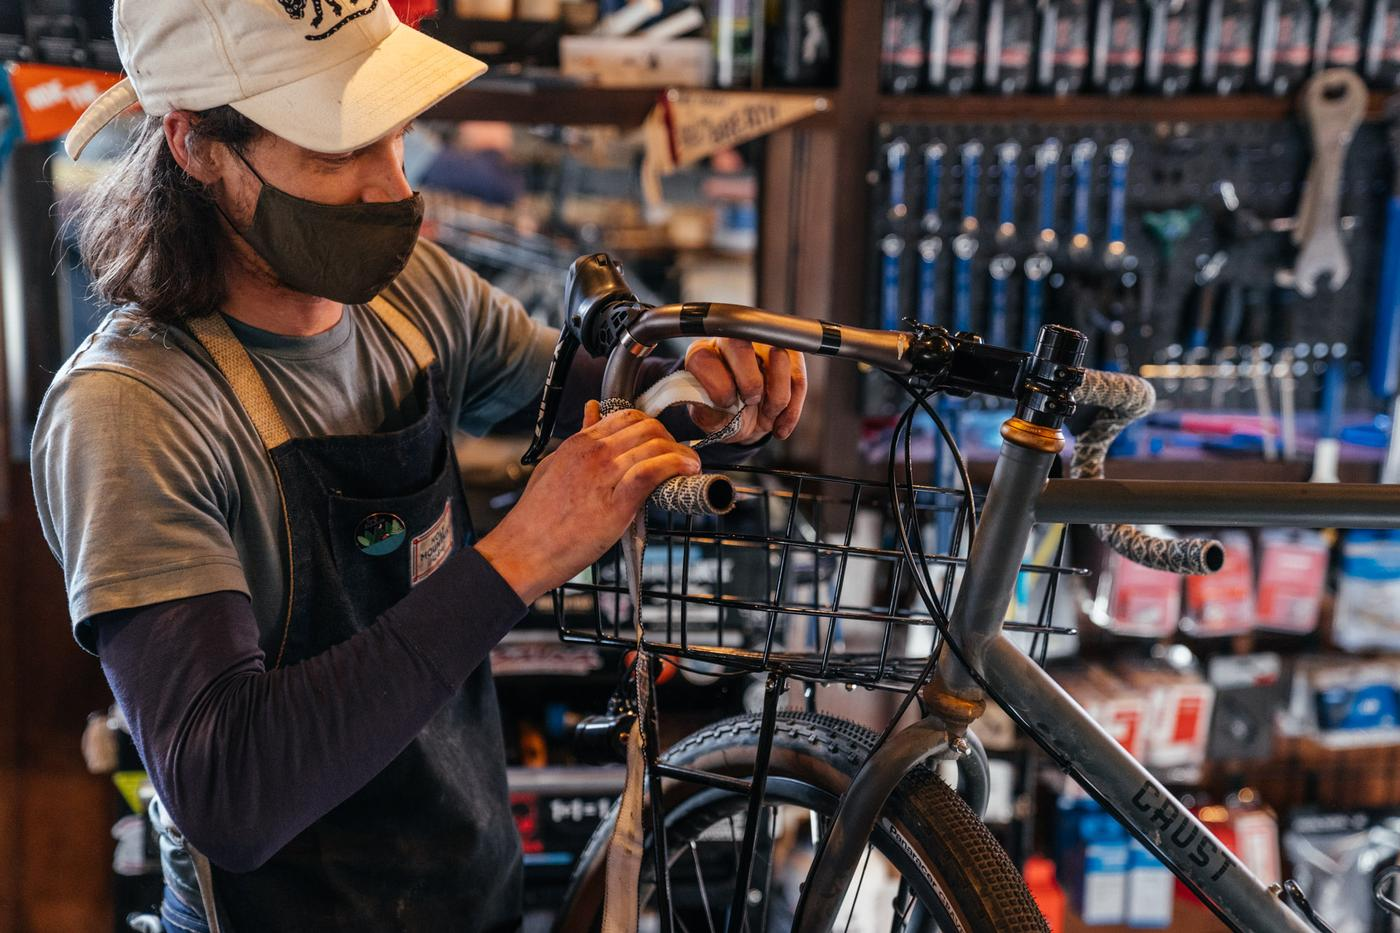 Workbench Review: Ratio's 11-Speed Road to 12-Speed Eagle Drop Bar Conversion Kit